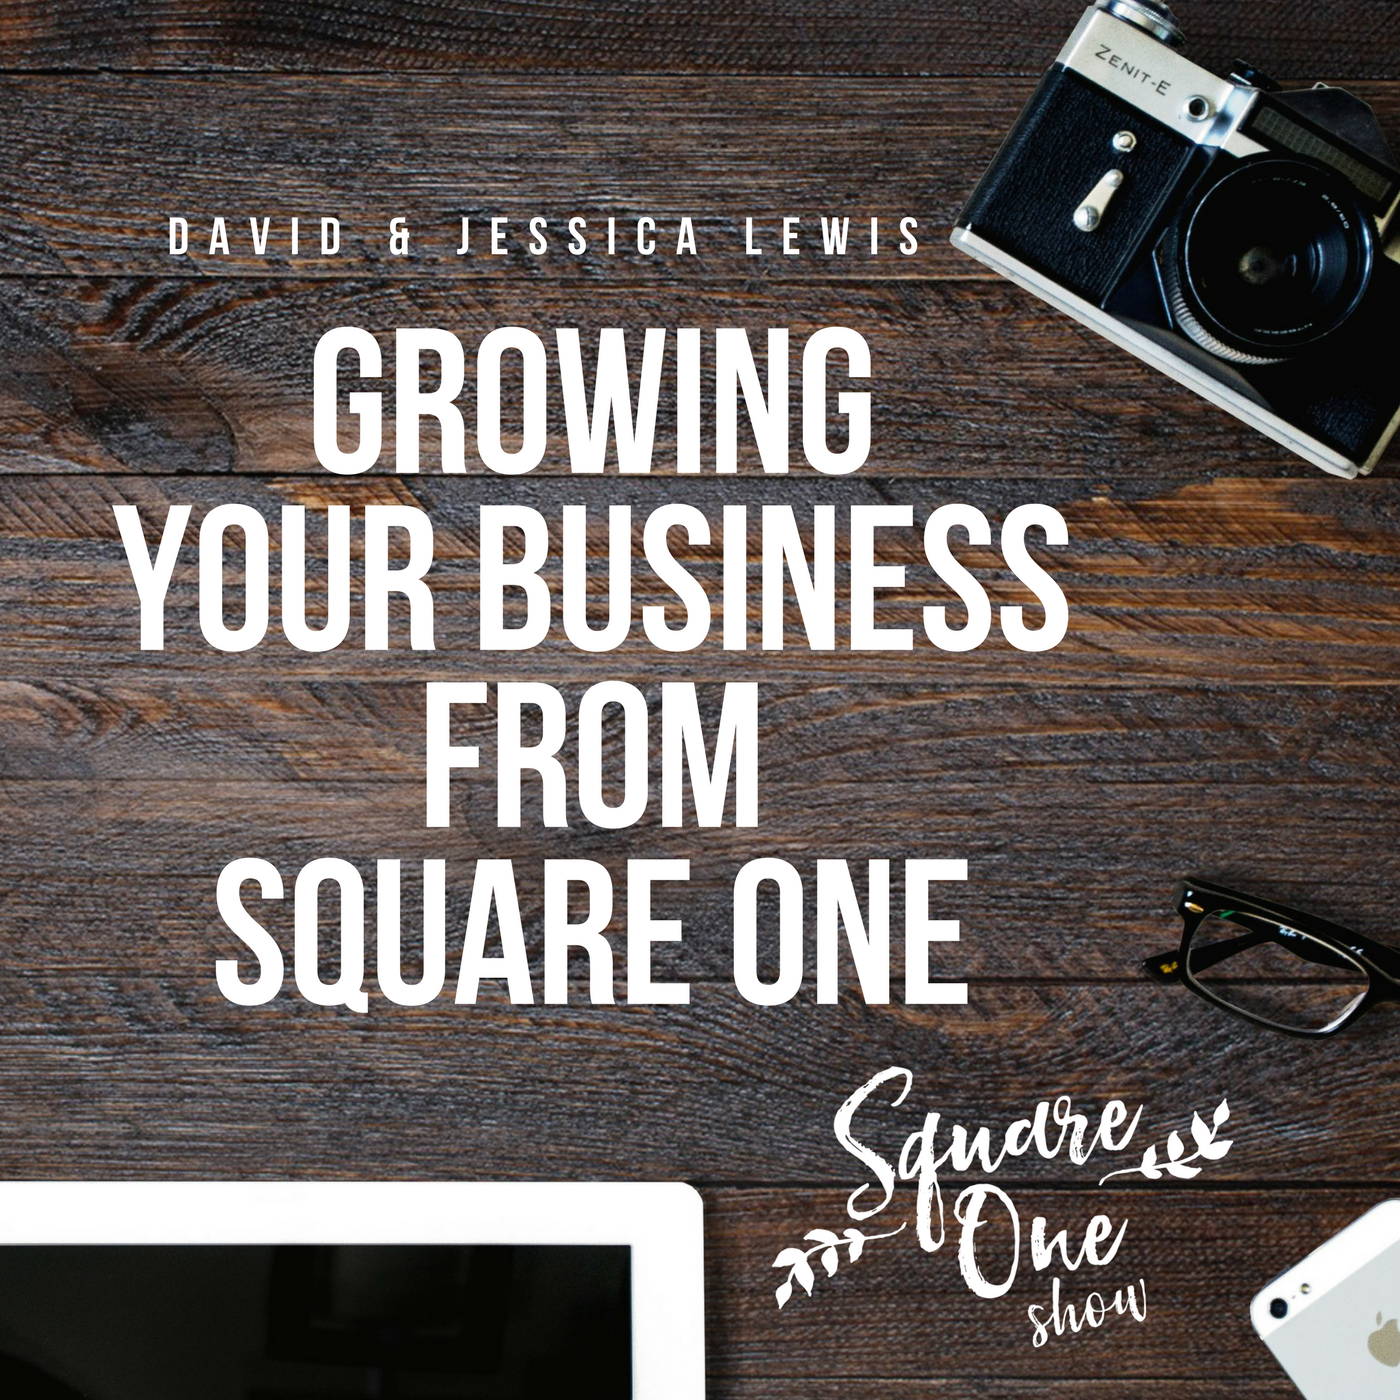 Square One Show Podcast - Growing Your Business From Square One